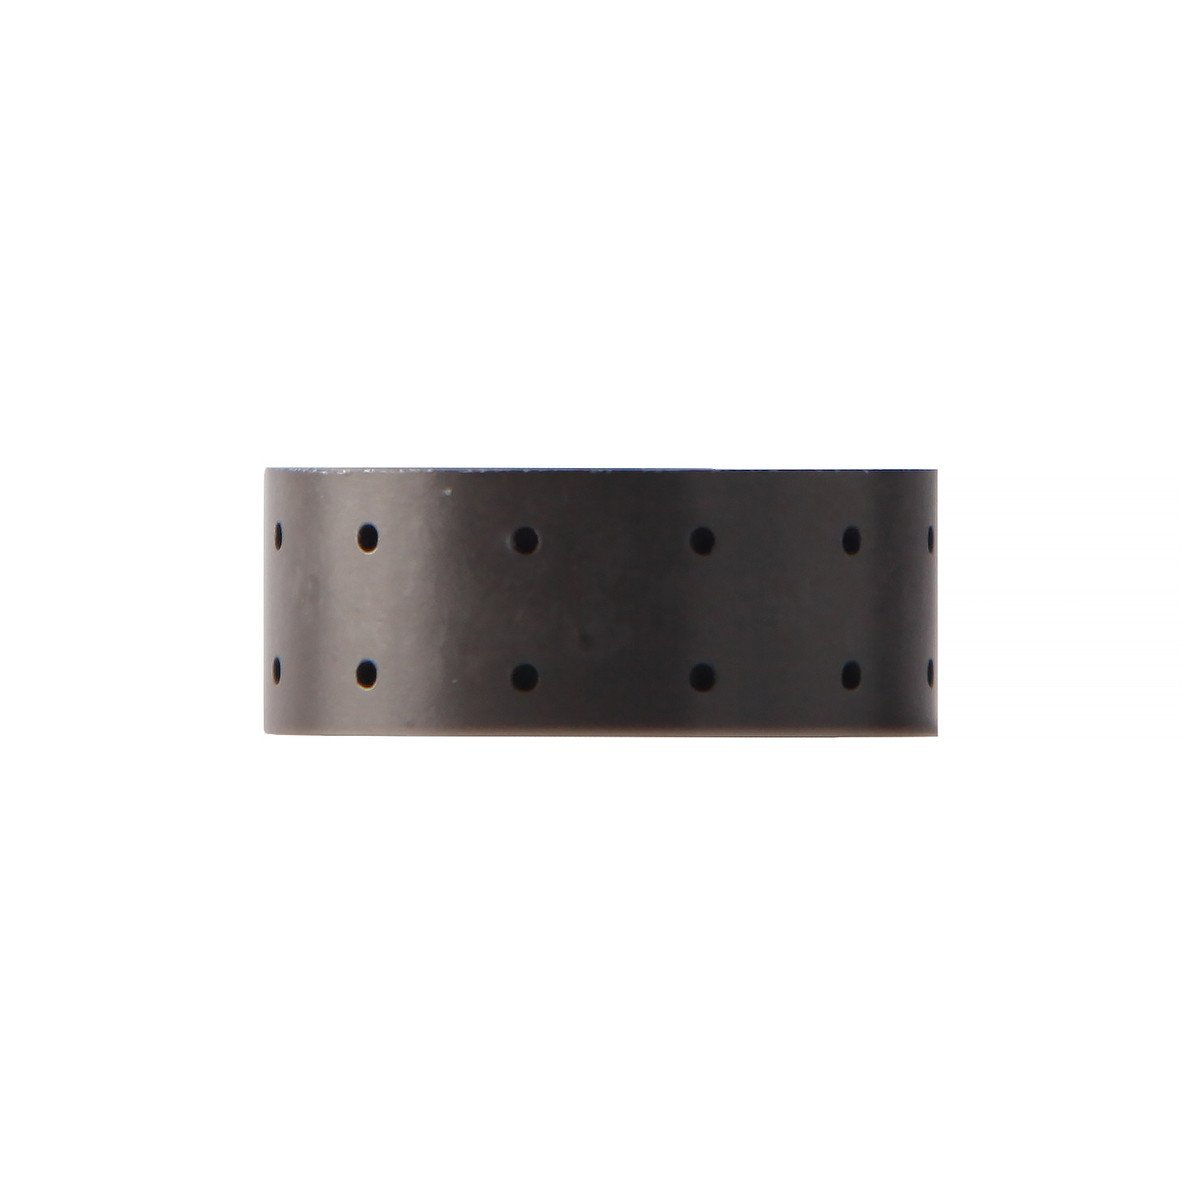 Module Concrete Ring -33526